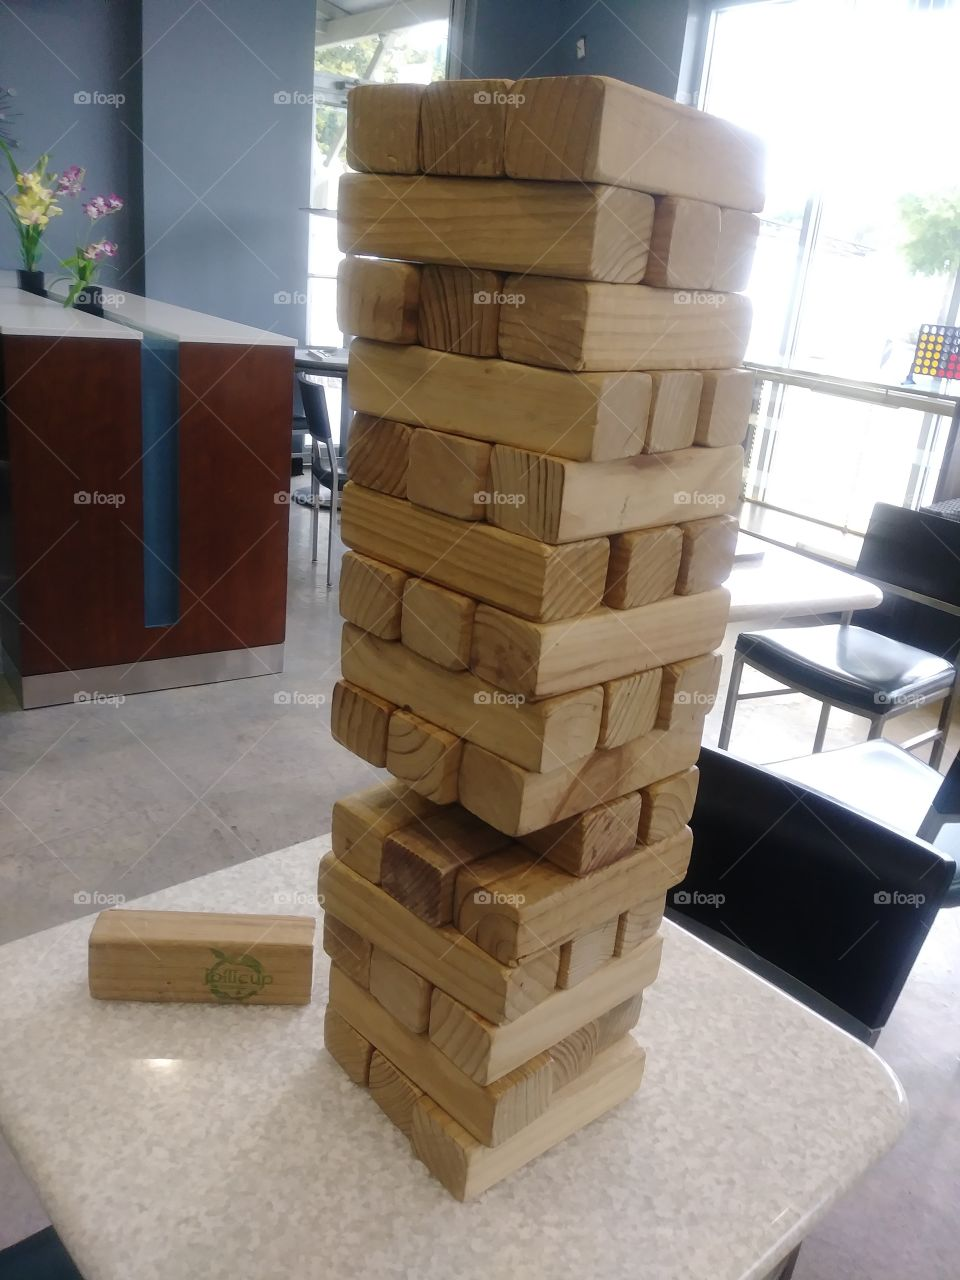 A game of Jenga. Wood game blocks stacked.